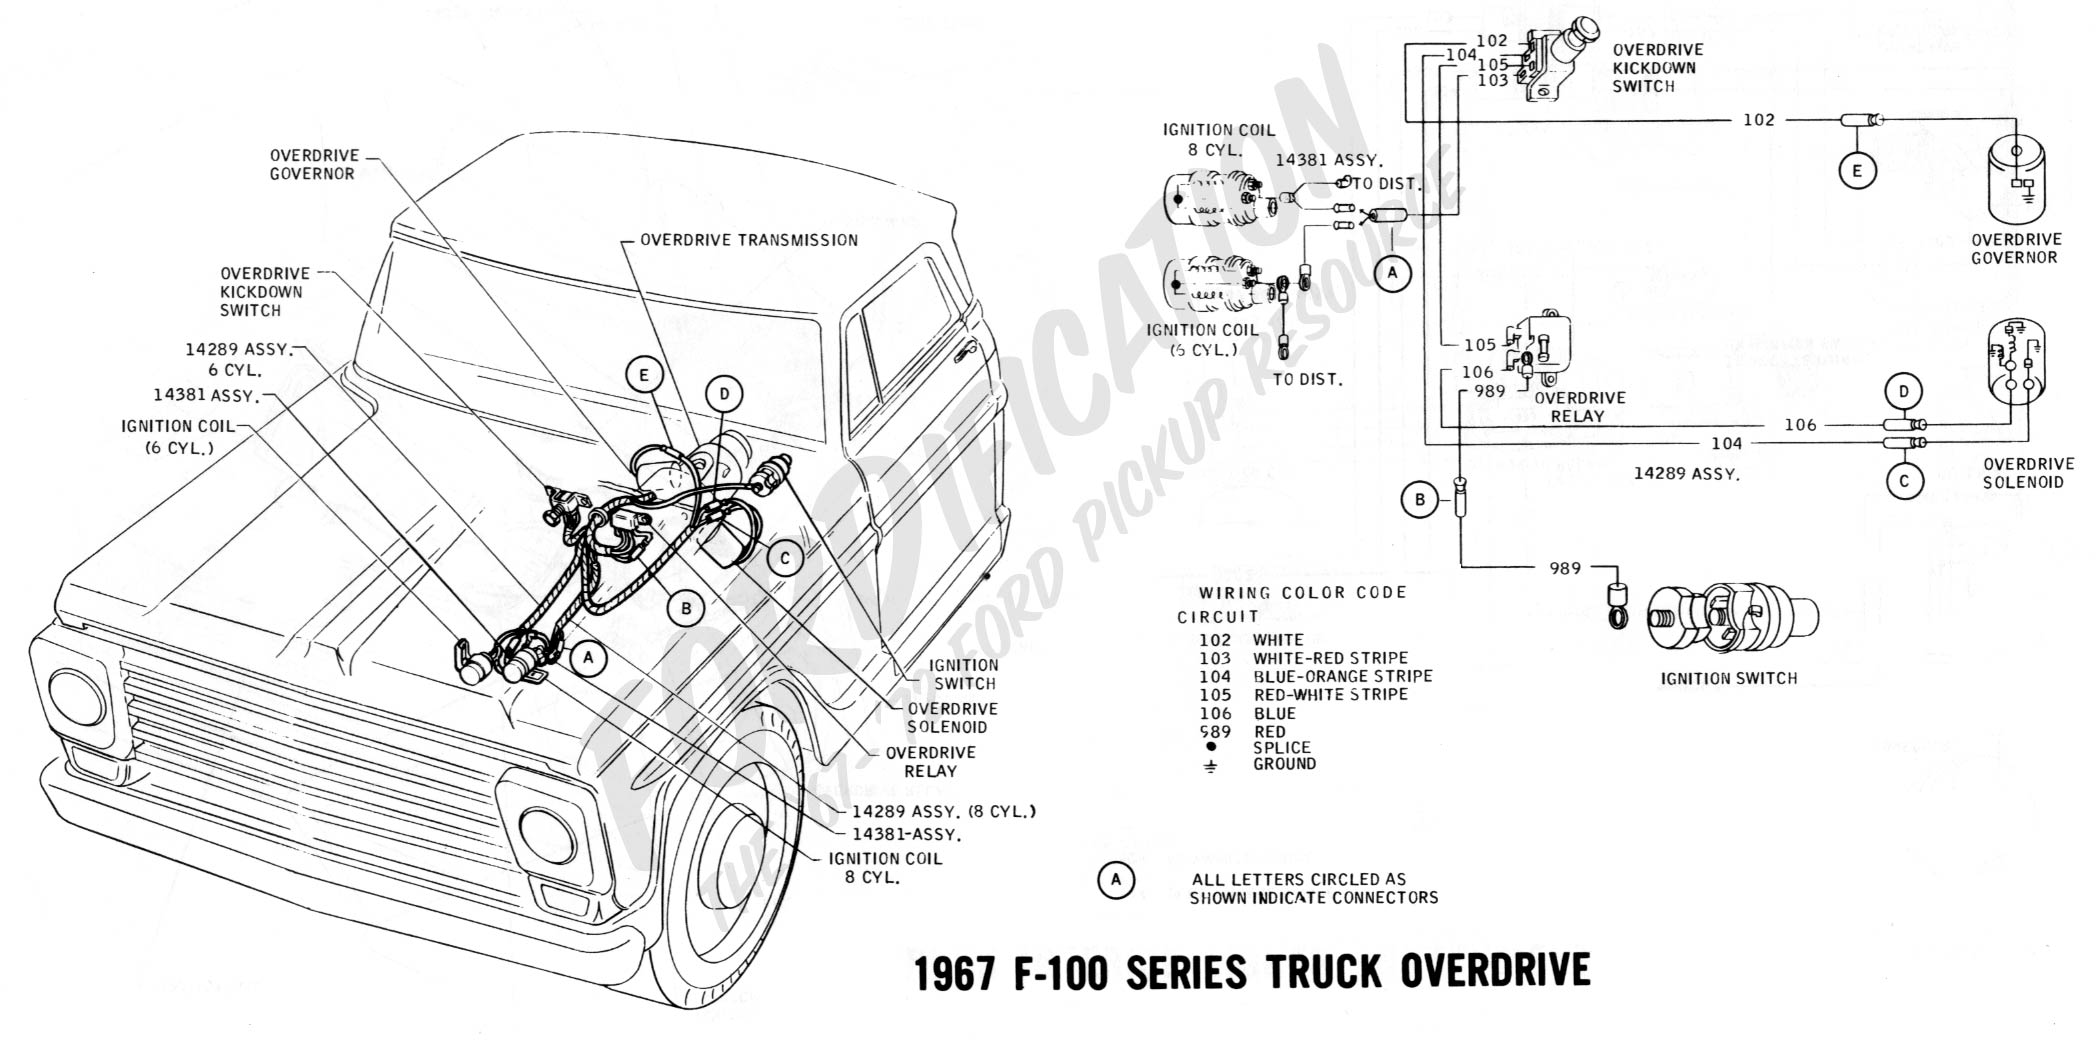 Groovy Ford Truck Technical Drawings And Schematics Section H Wiring Wiring Cloud Apomsimijknierdonabenoleattemohammedshrineorg